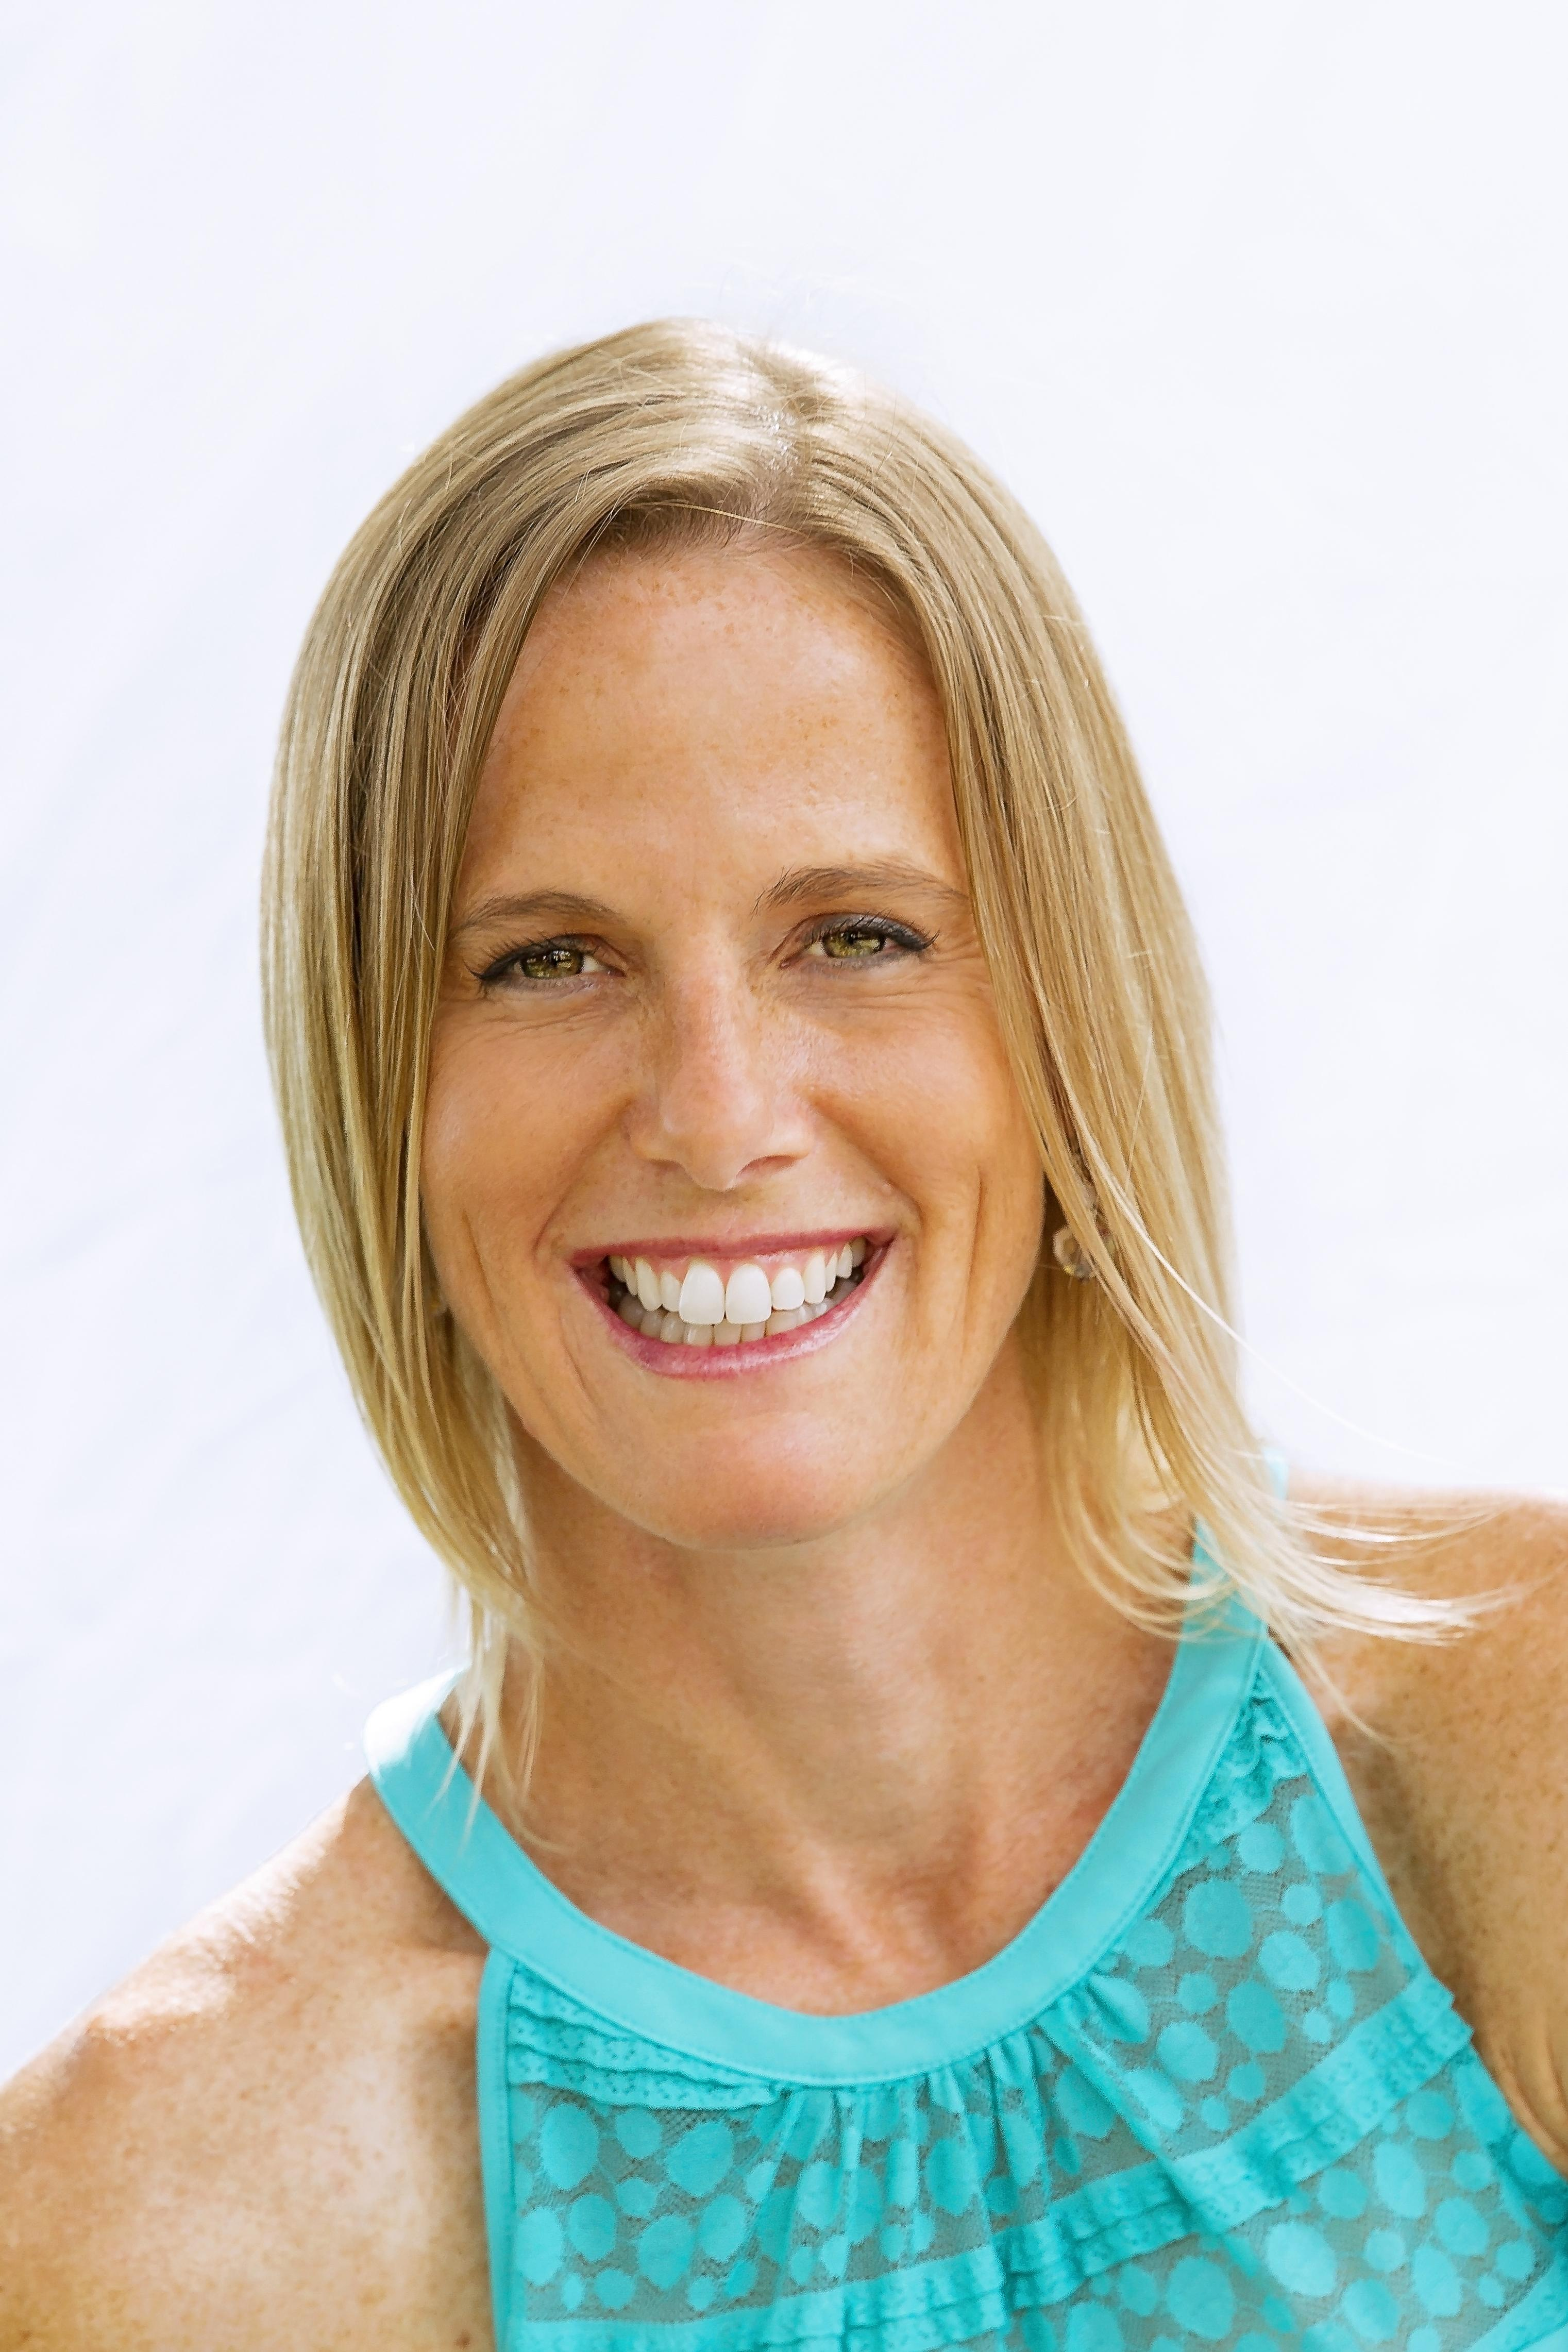 Stephanie Lang is an Integrative Nutrition Health Coach and a Mom of Two. She is passionate about helping families to create healthier lifestyles by embracing whole foods, physical activity and natural solutions.